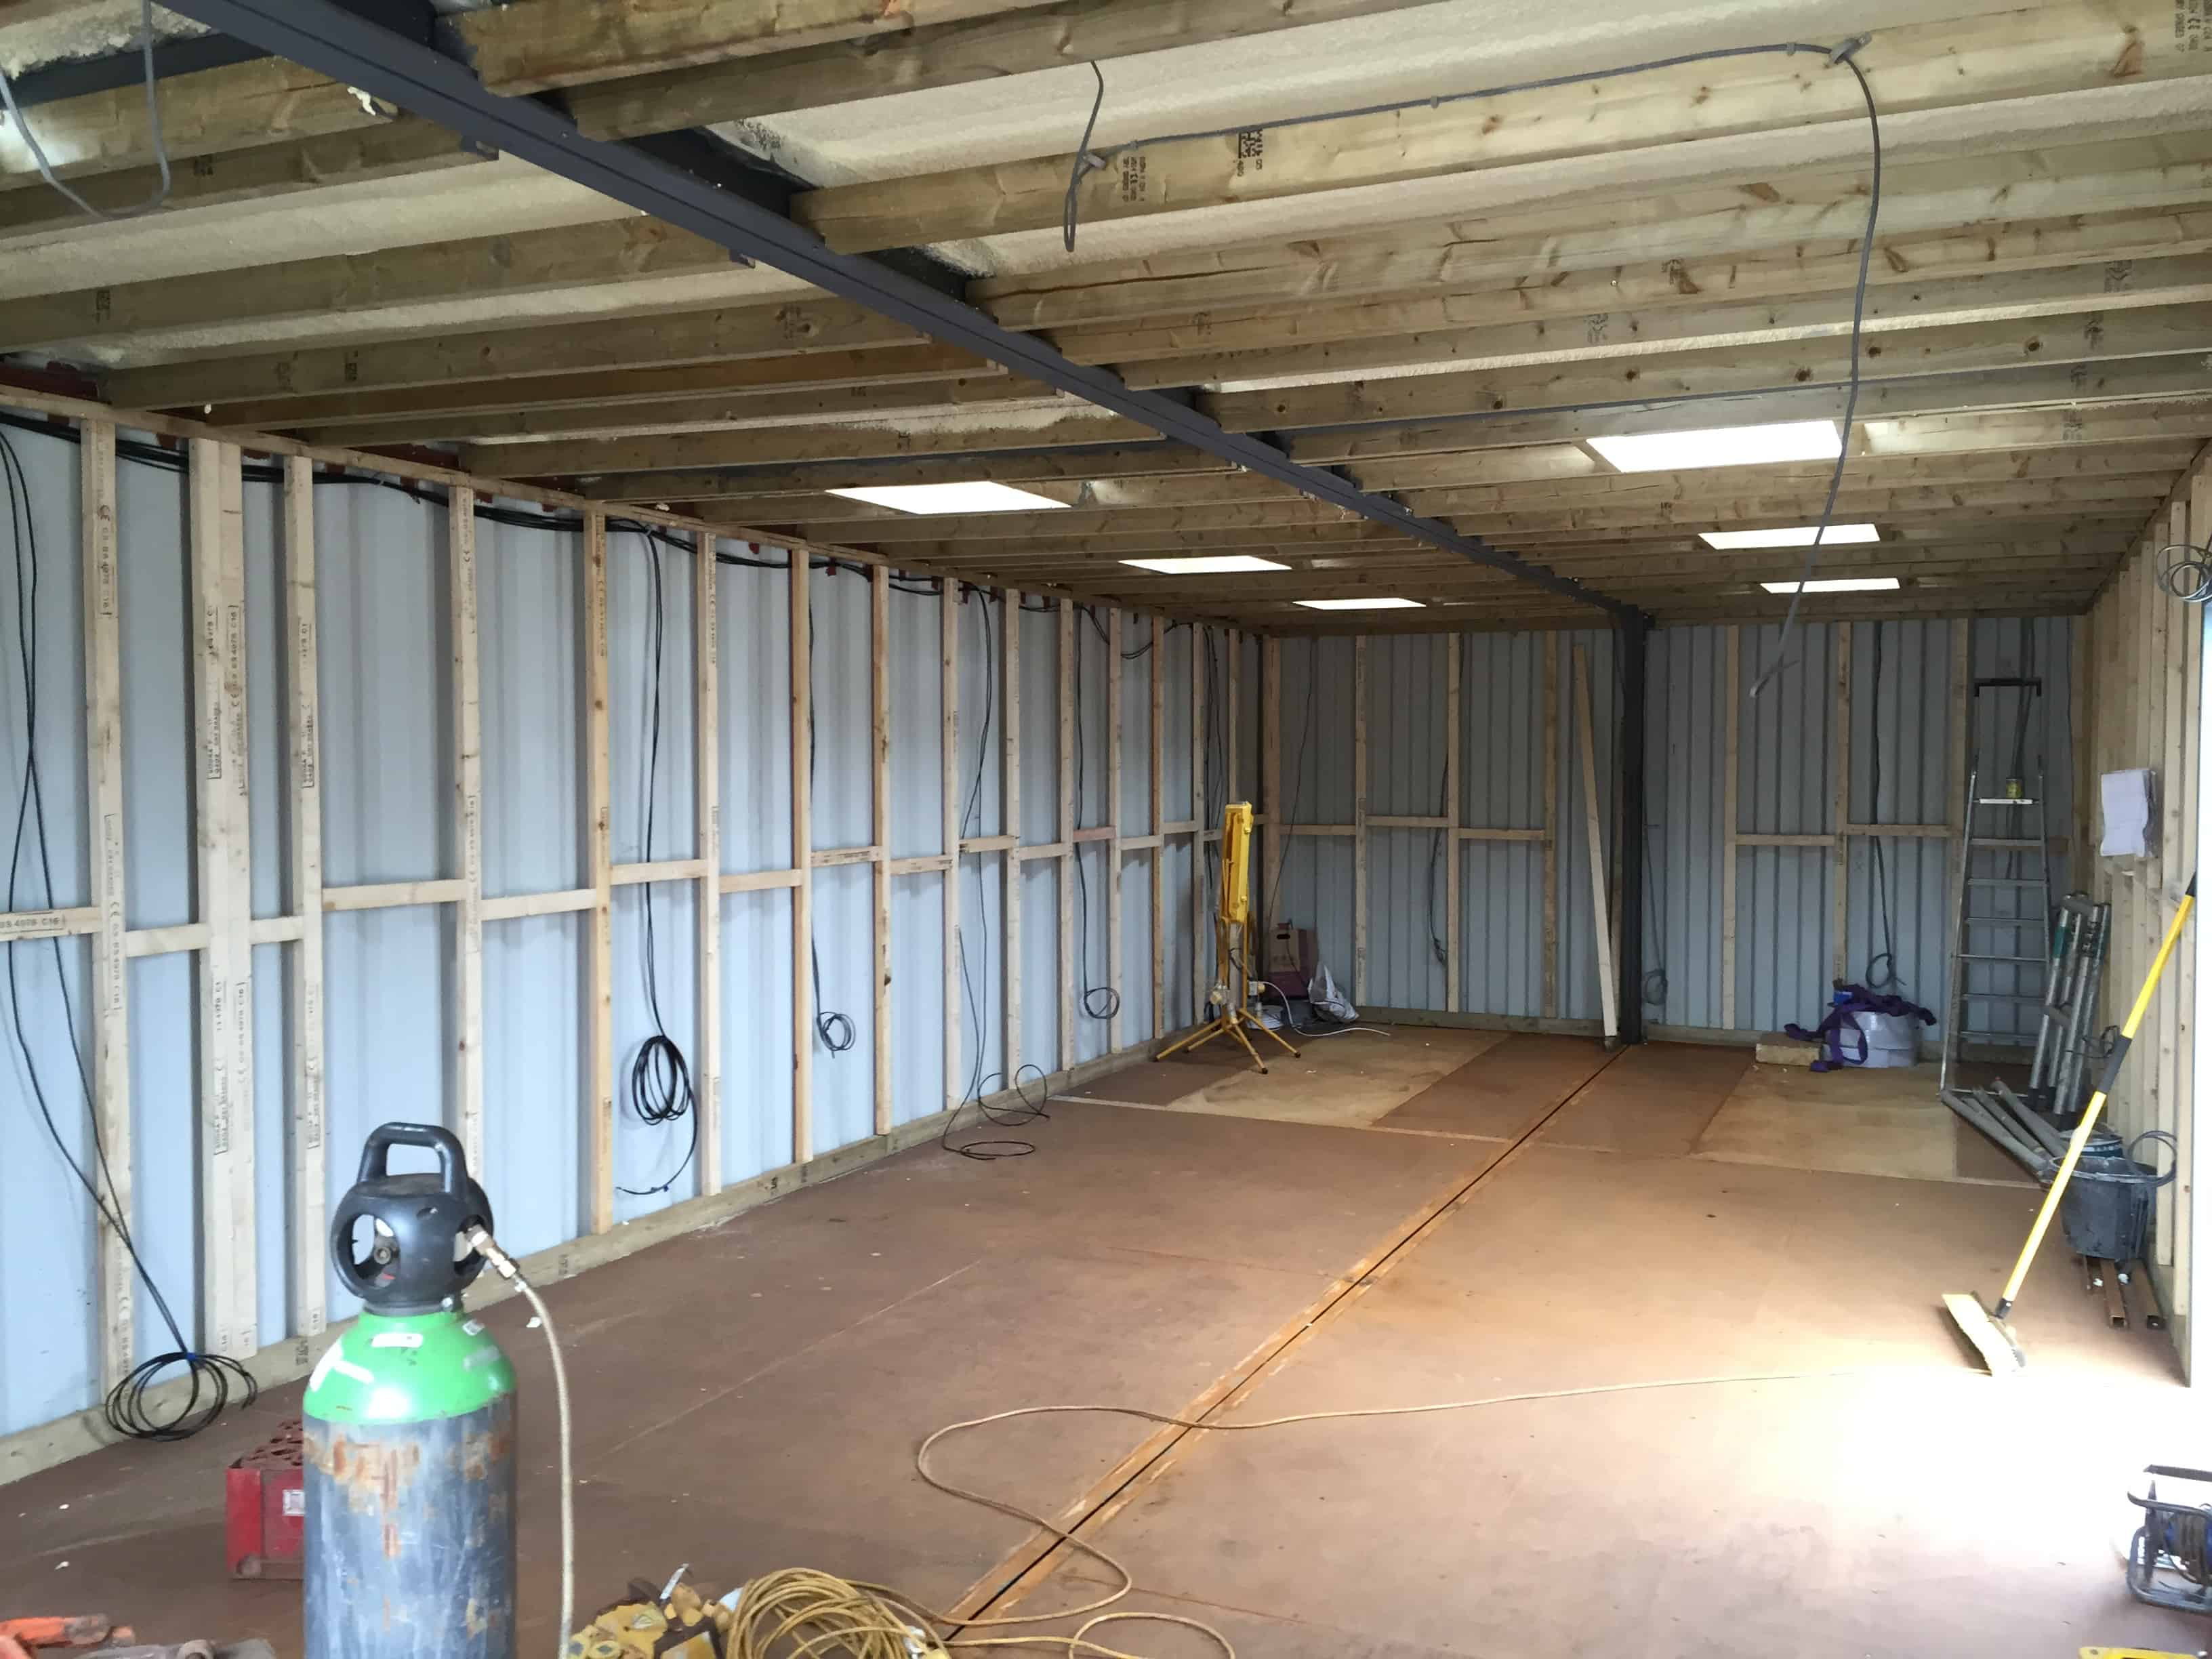 Shipping container classroom conversion in the build process